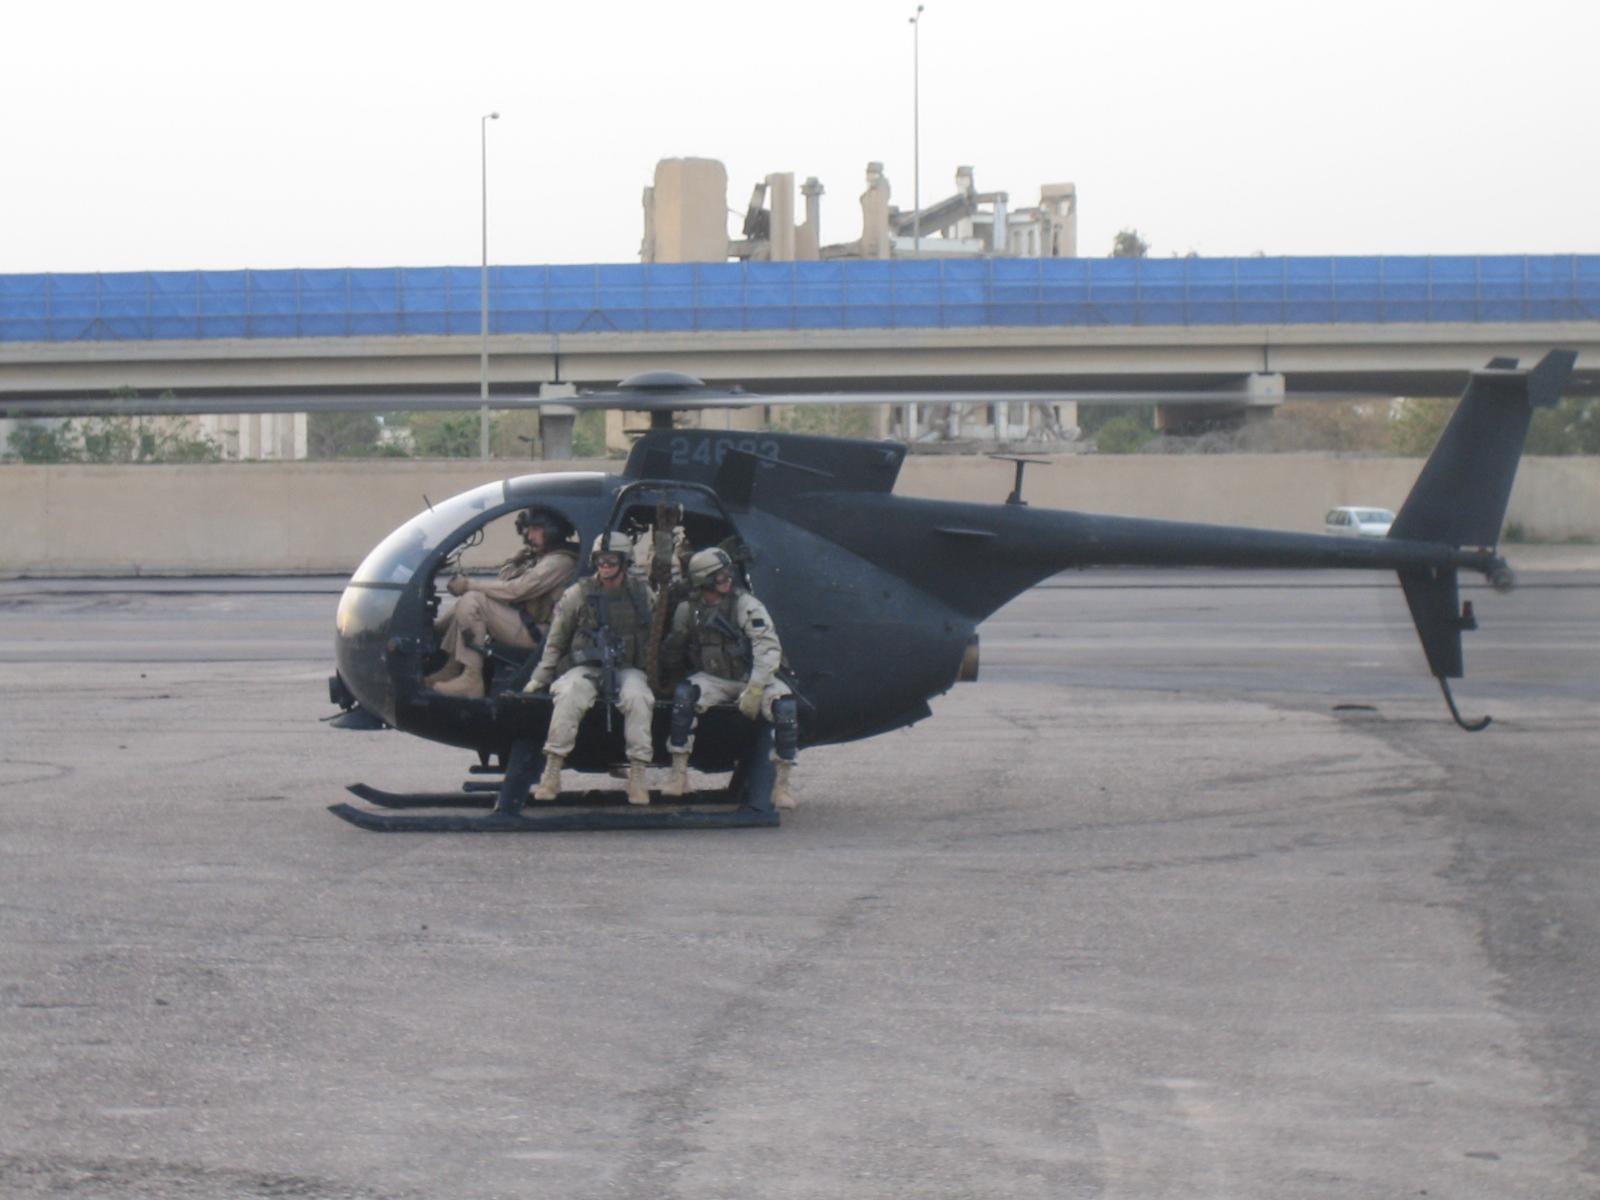 unmarked helicopters with File Oh 6 Cayuse on And Keep An Eye On The Helicopter Colors Are The Unmarked Helicopters Circling The Area Black Probably World Government Not A Good Area For Play That Day Are They Blue Thats The Sheriffs Secret Police Theyll Keep A Good Eye On Your Kids And Hardly Ever Take One Are They Painted With  plex Murals Depicting Birds Of Prey Diving No One Knows What Those Helicopters Are Or What They Want Do Not Play In The Area Return To Your Home And Lock The Doors Until A Sheriffs Secret Policeman Leaves A Carnat together with Black Helicopters further Married To The Iceman also Fort Knox Gold in addition File OH 6 Cayuse.